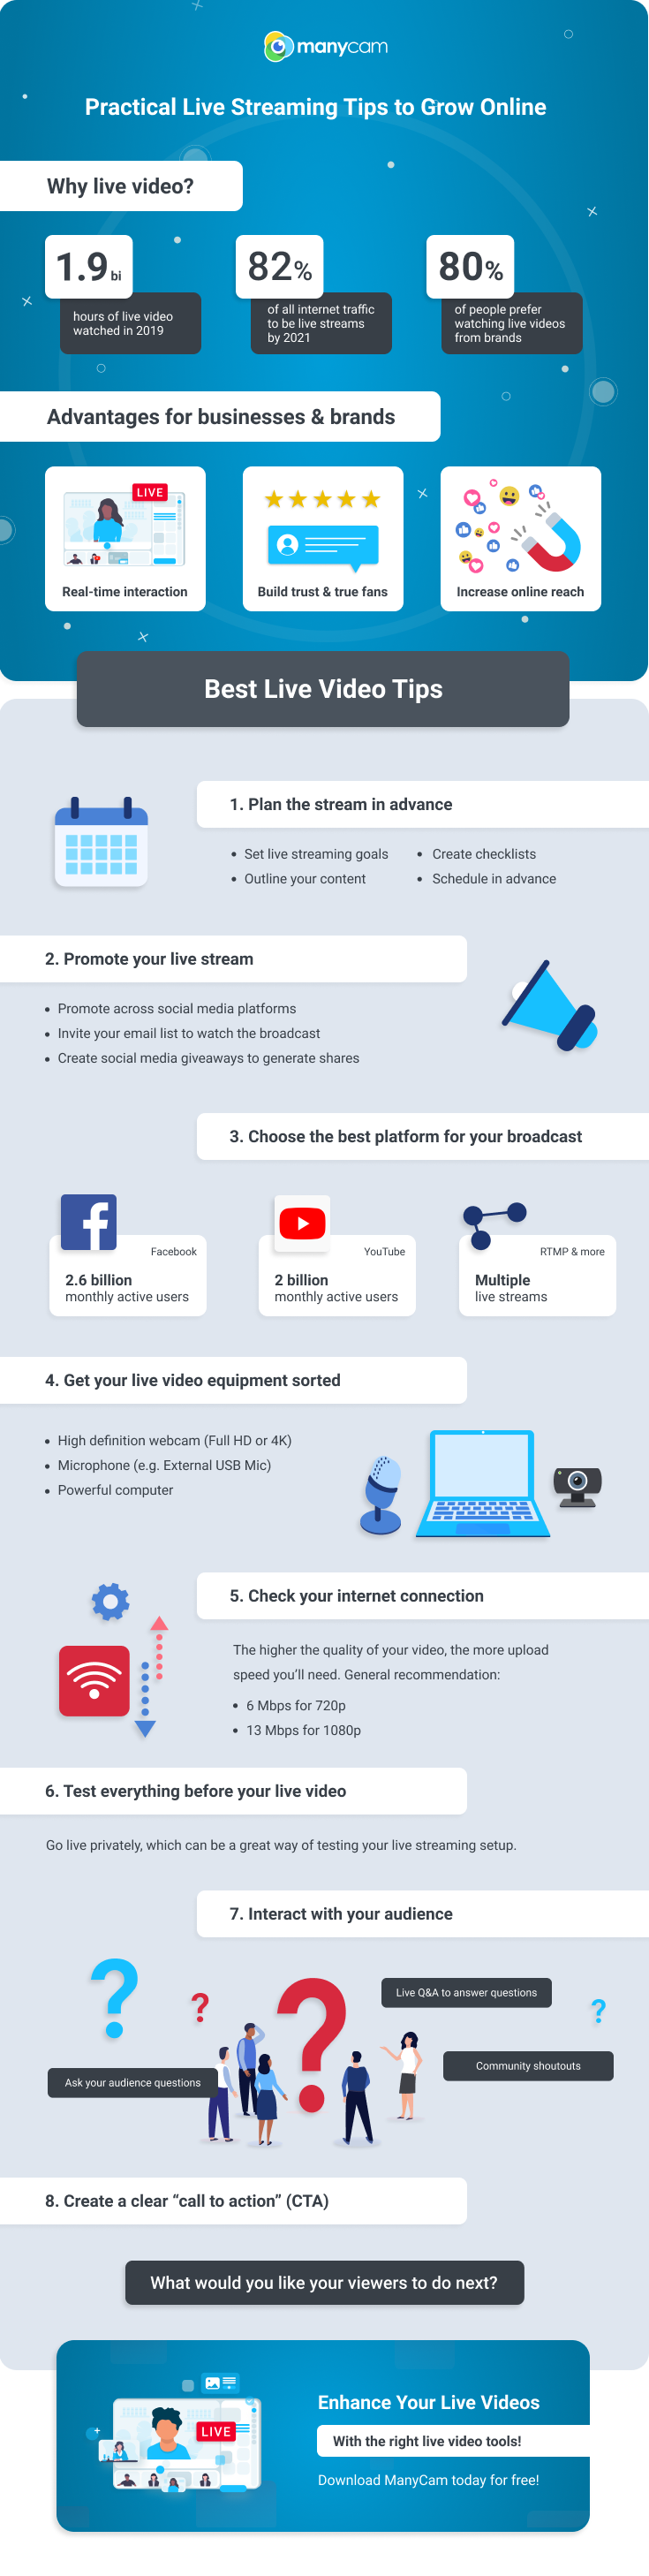 Infographic Best Live Streaming Tips, why live video is important, the advantages of using live videos, and 8 tips to help you stream successfully.